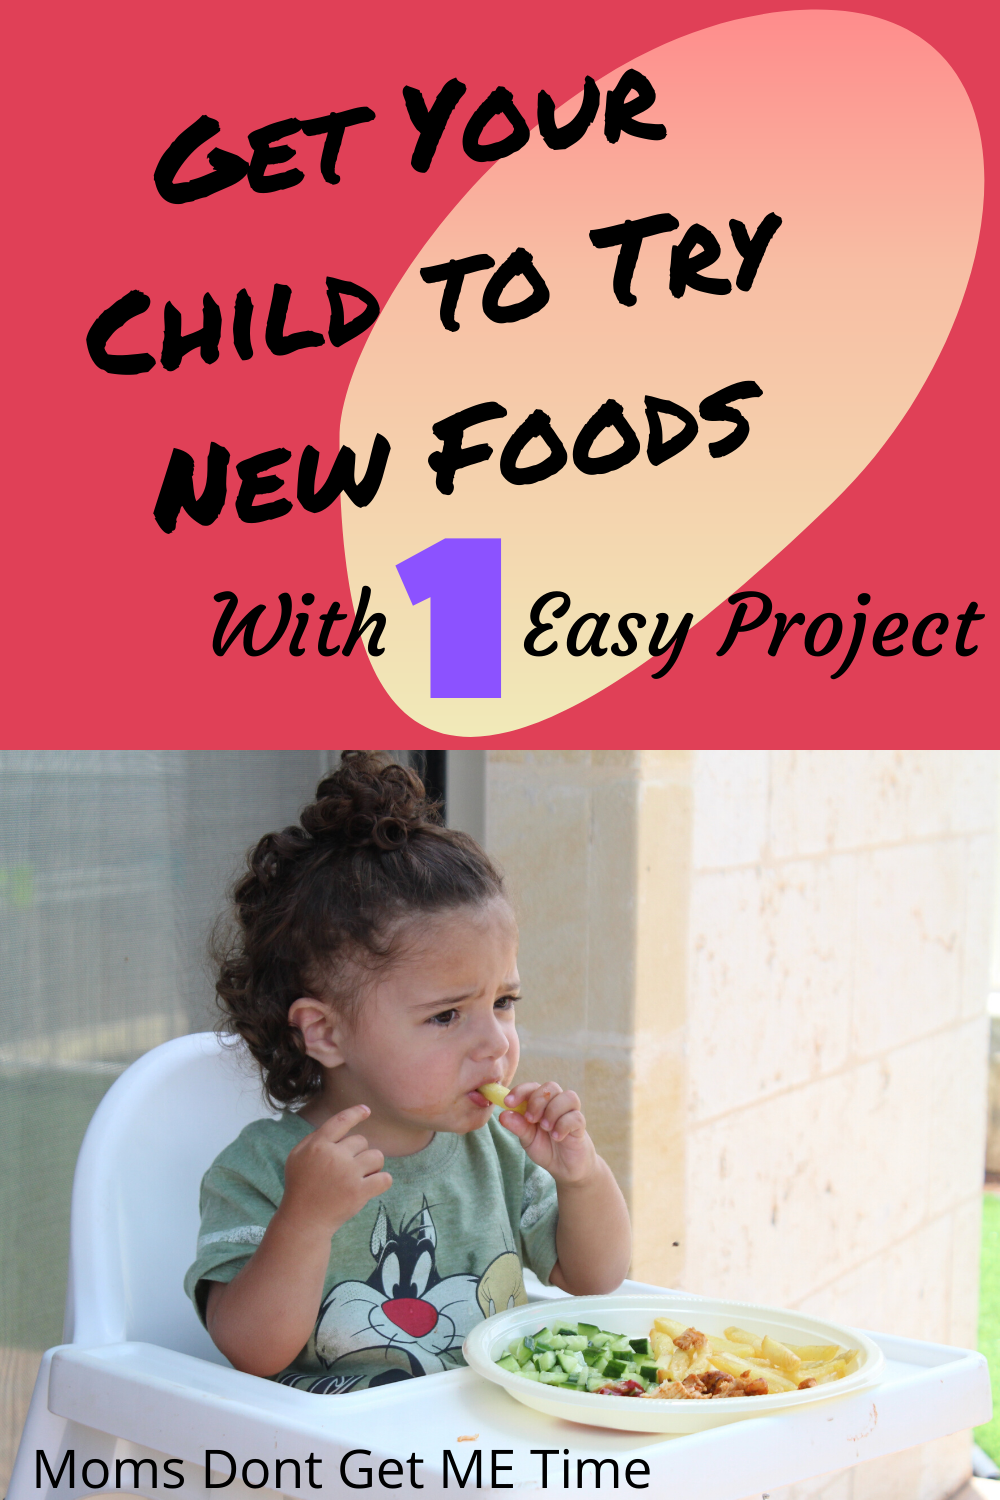 aa7c93e789f839abcbf082c190d291fb - How To Get My Picky Eater To Try New Foods